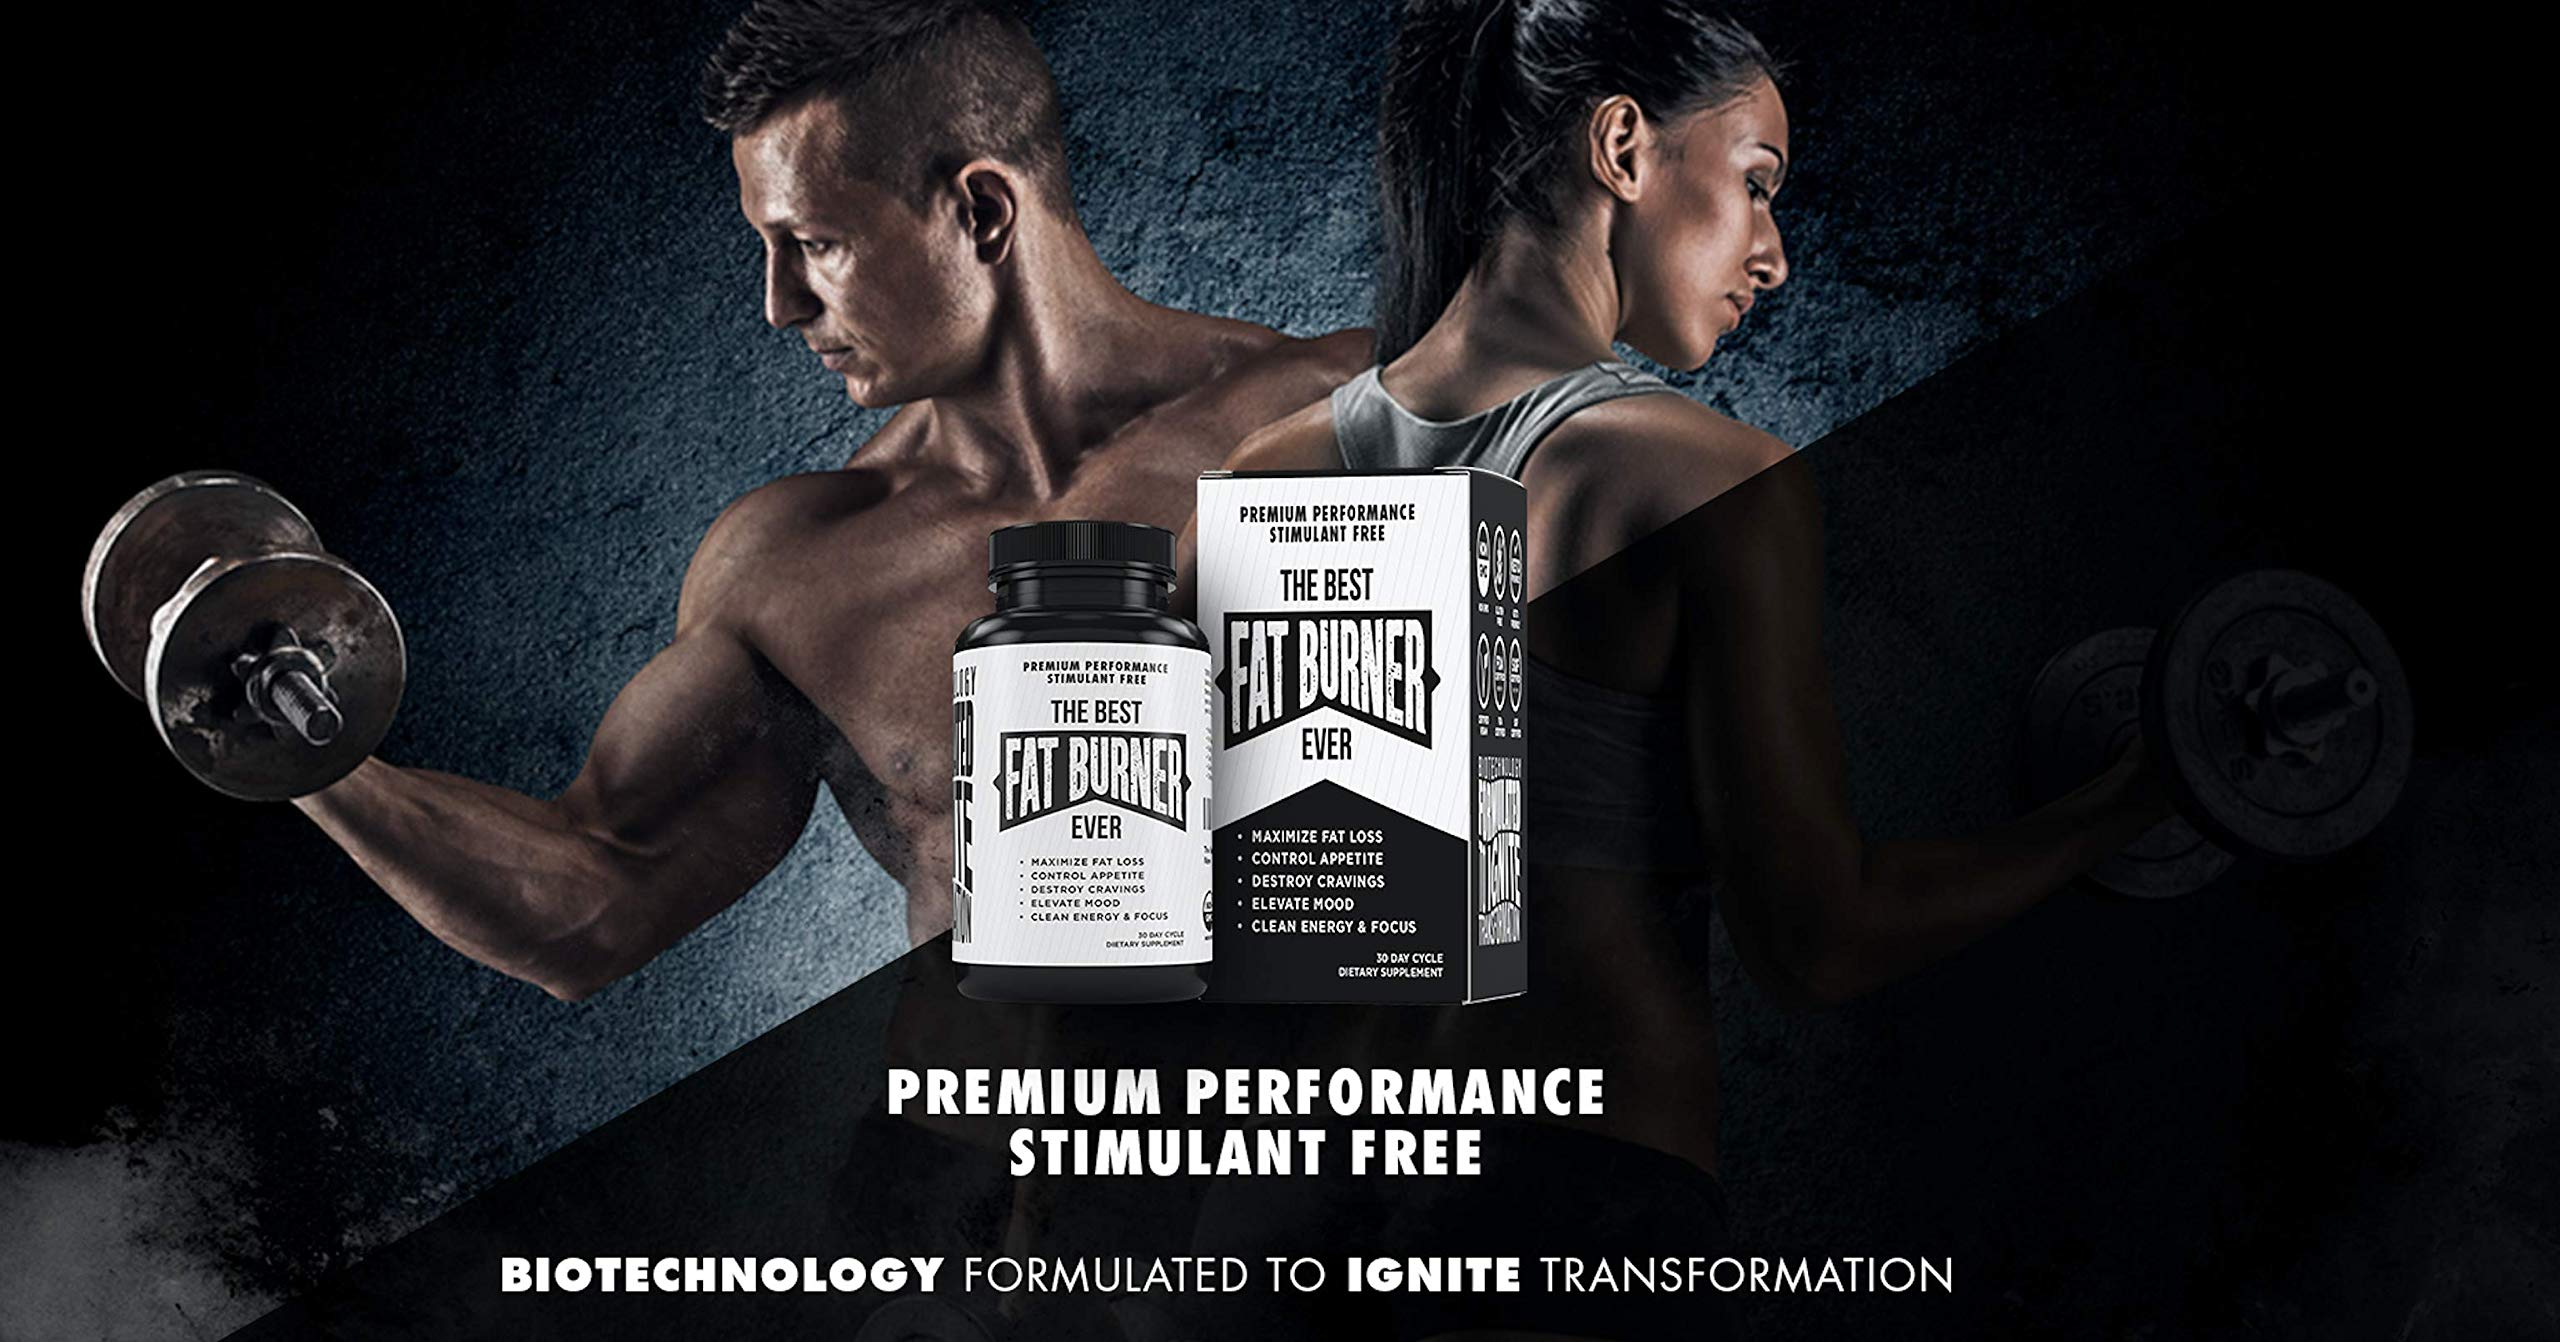 The Best Fat Burner Ever - Weight Loss Supplement, Appetite Suppressant, Stimulant Free - Premium Fat Burning Thermogenic - Lepticore, Berberine, White Kidney Bean Extract, Piperine, More - Diet Pills by The Best Fat Burner Ever